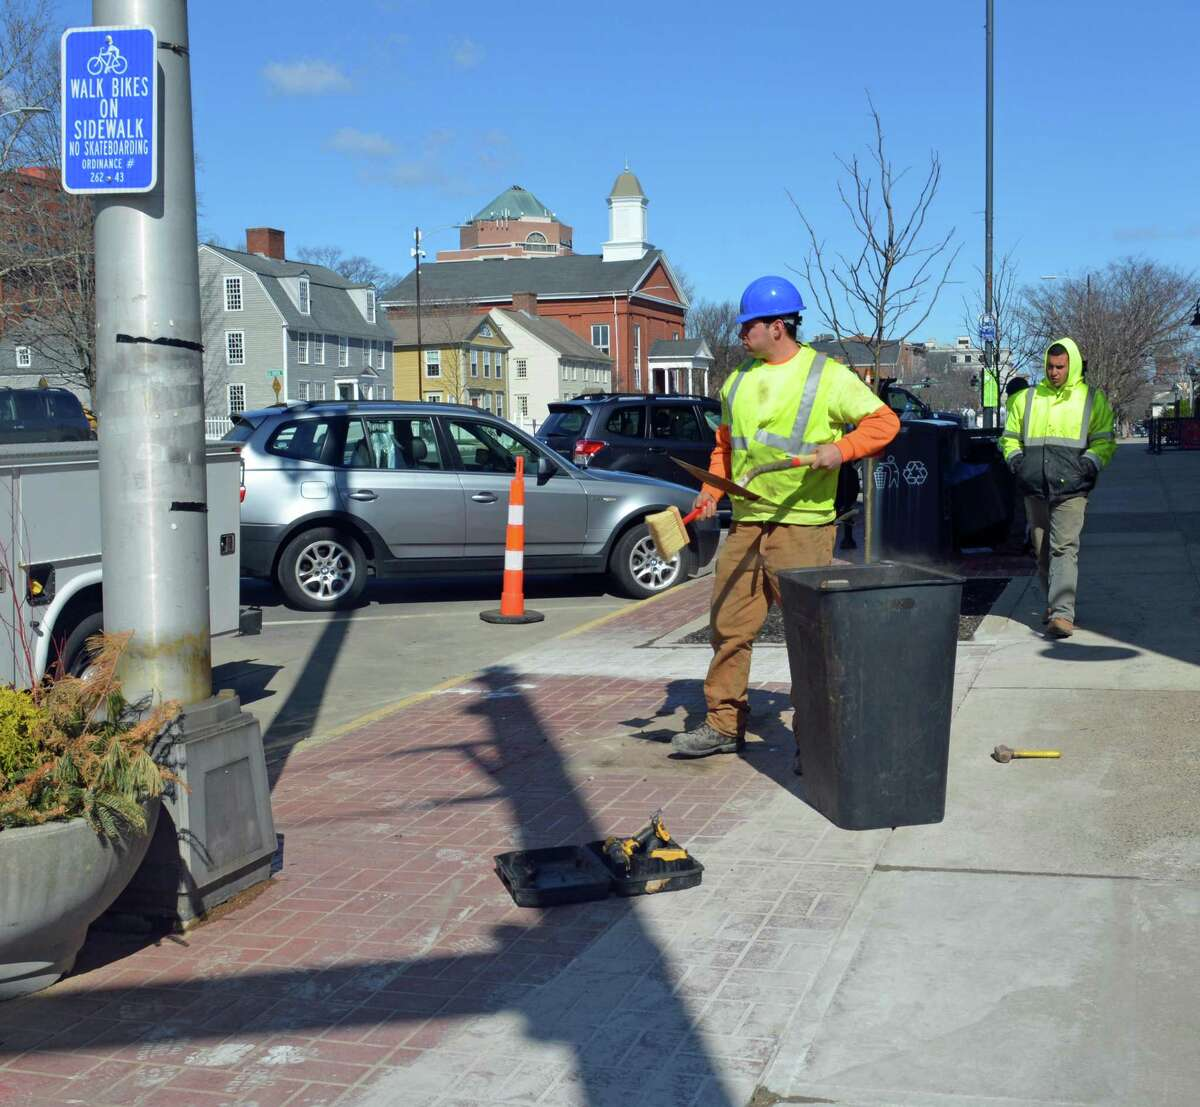 Construction crews were out Monday morning at the corner of Union and Main streets in Middletown, preparing the sidewalk area for the building of pedestrian bump-outs, which is expected to begin Tuesday and progress north down to Green Street.